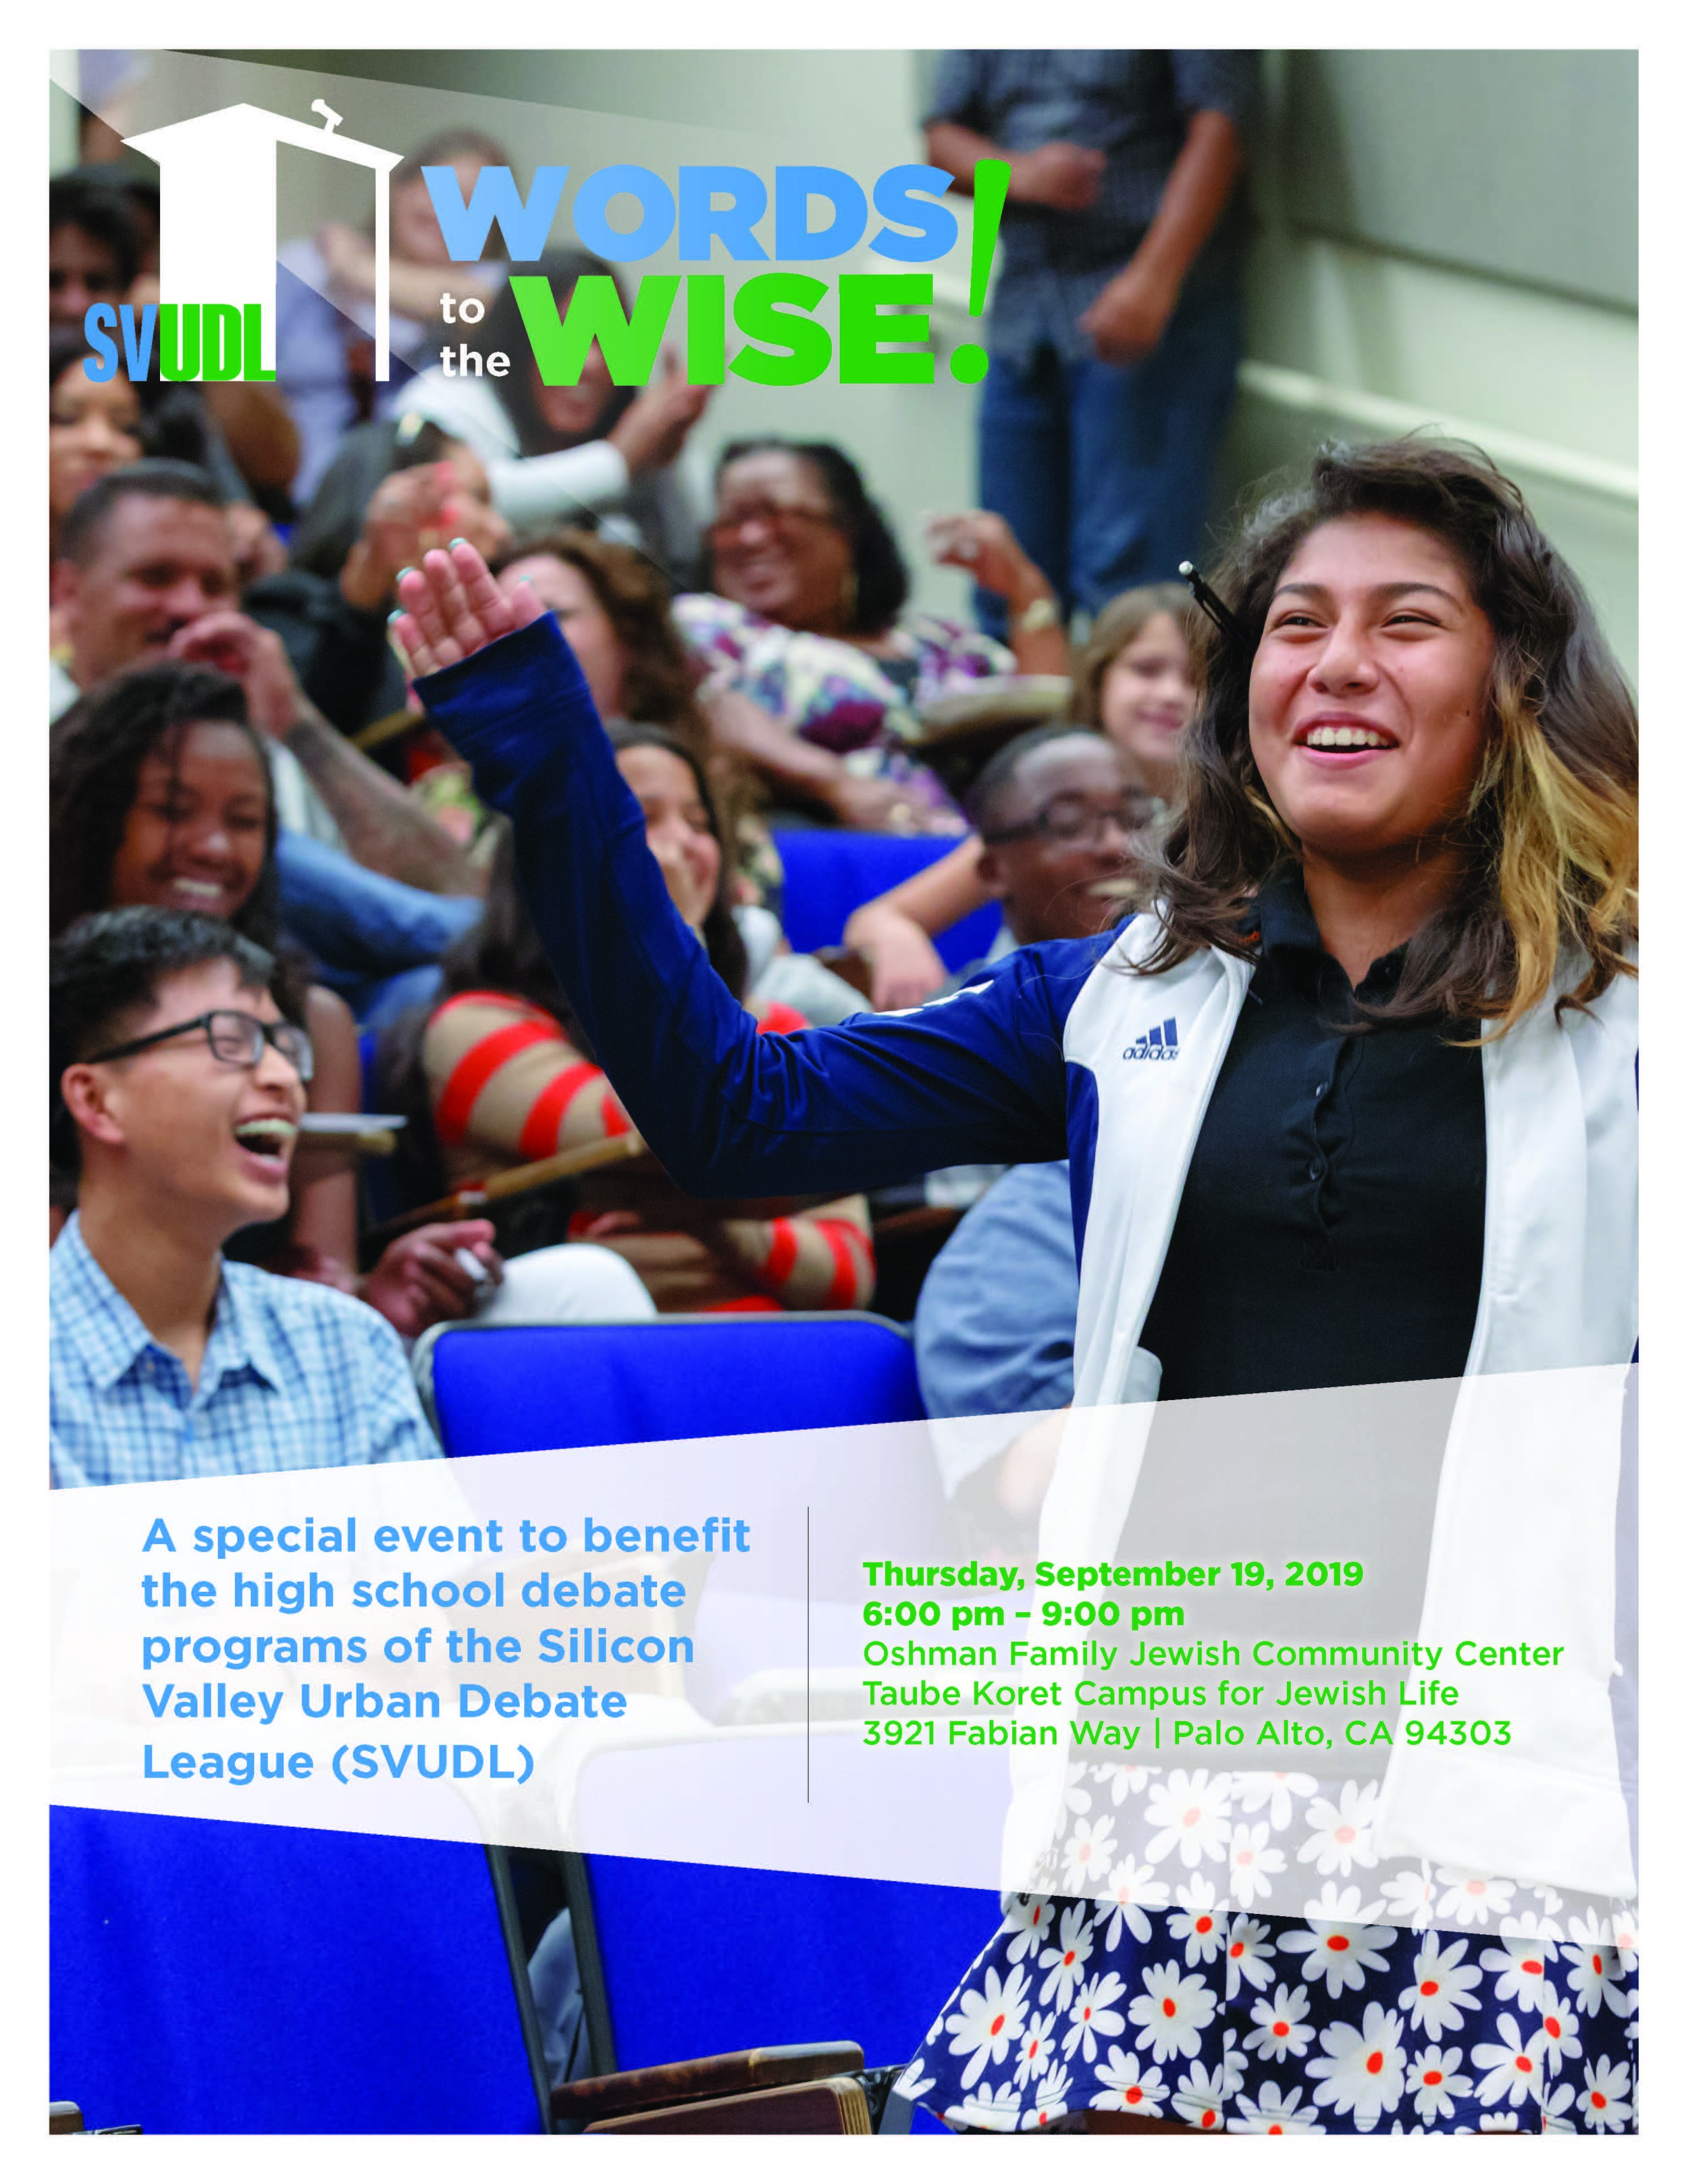 Support Our 2019 Words to the Wise Event! - Event Sponsorship and Individual Ticket Sales on sale now - click here to purchase